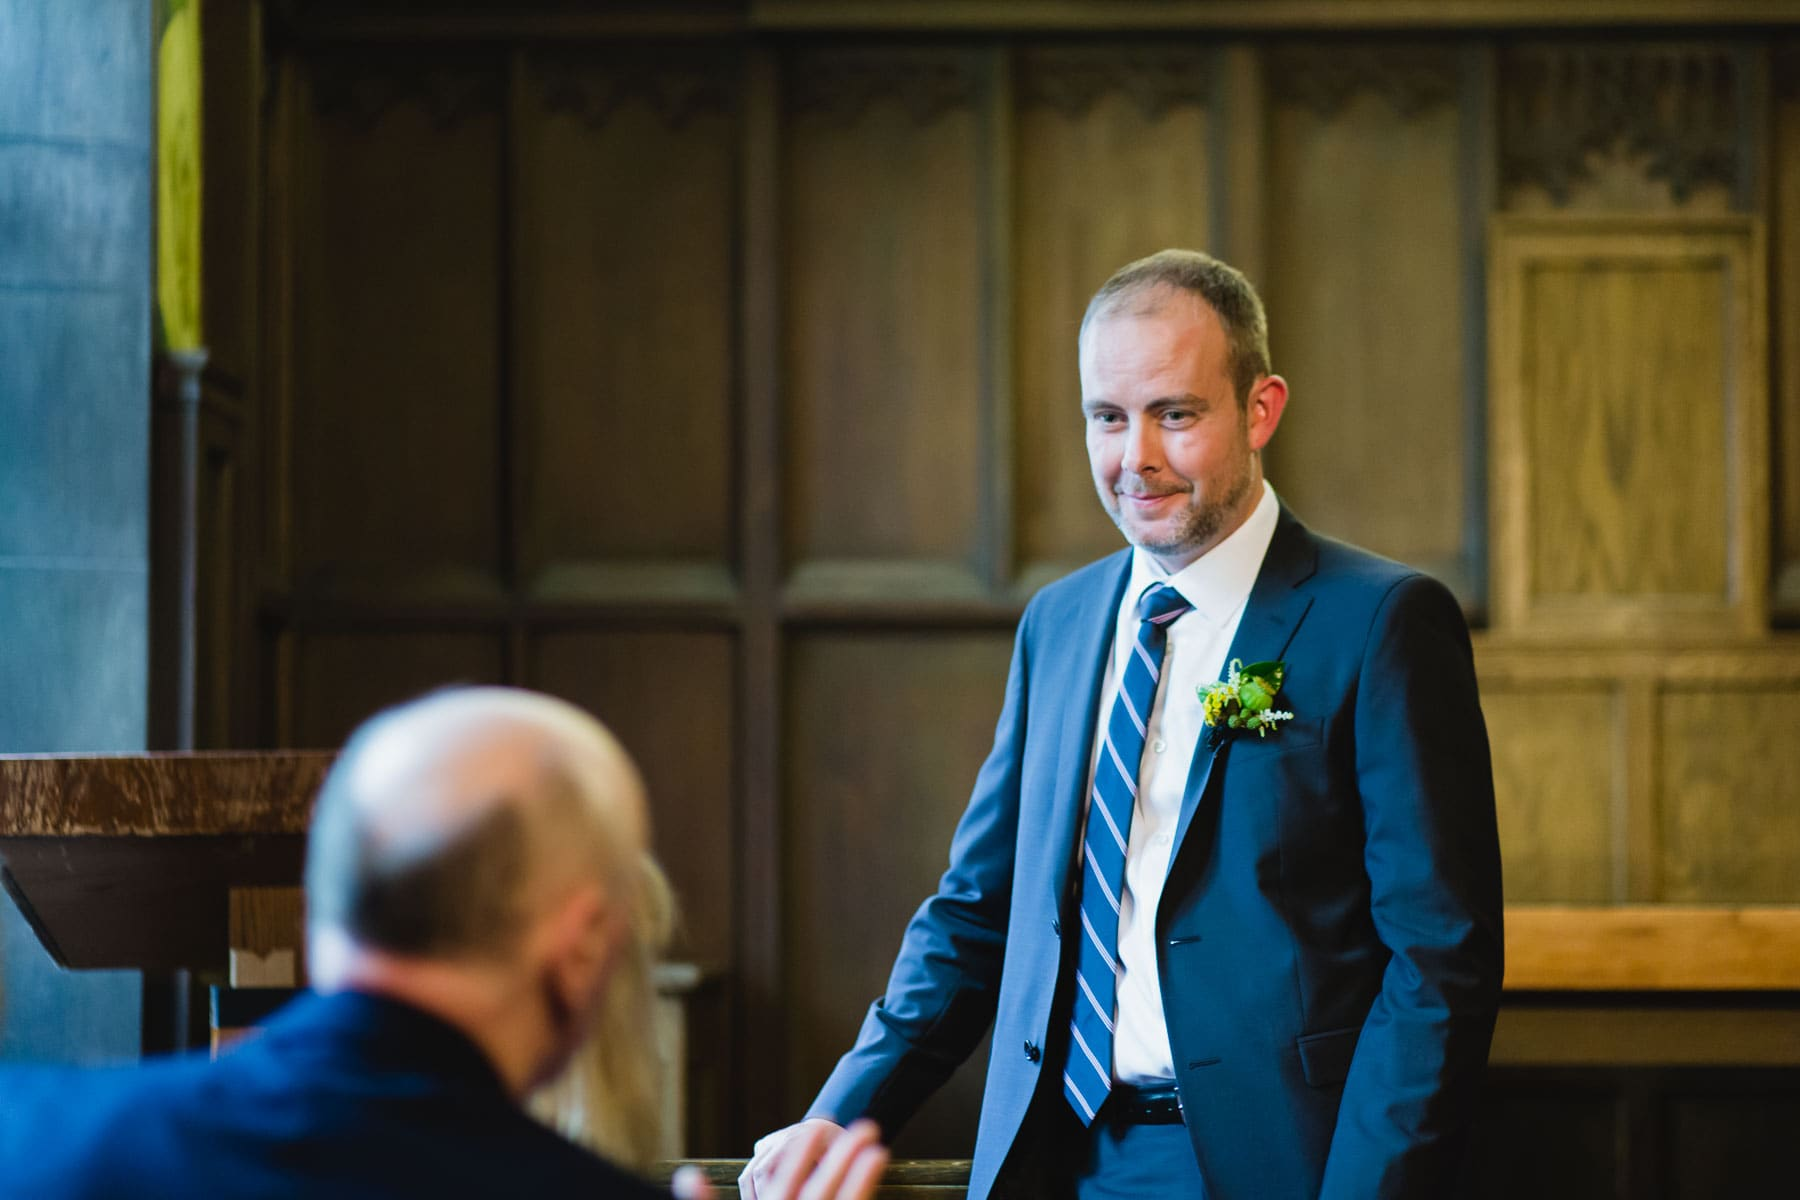 The groom smiles while standing confidently in the ceremony location of Hart House